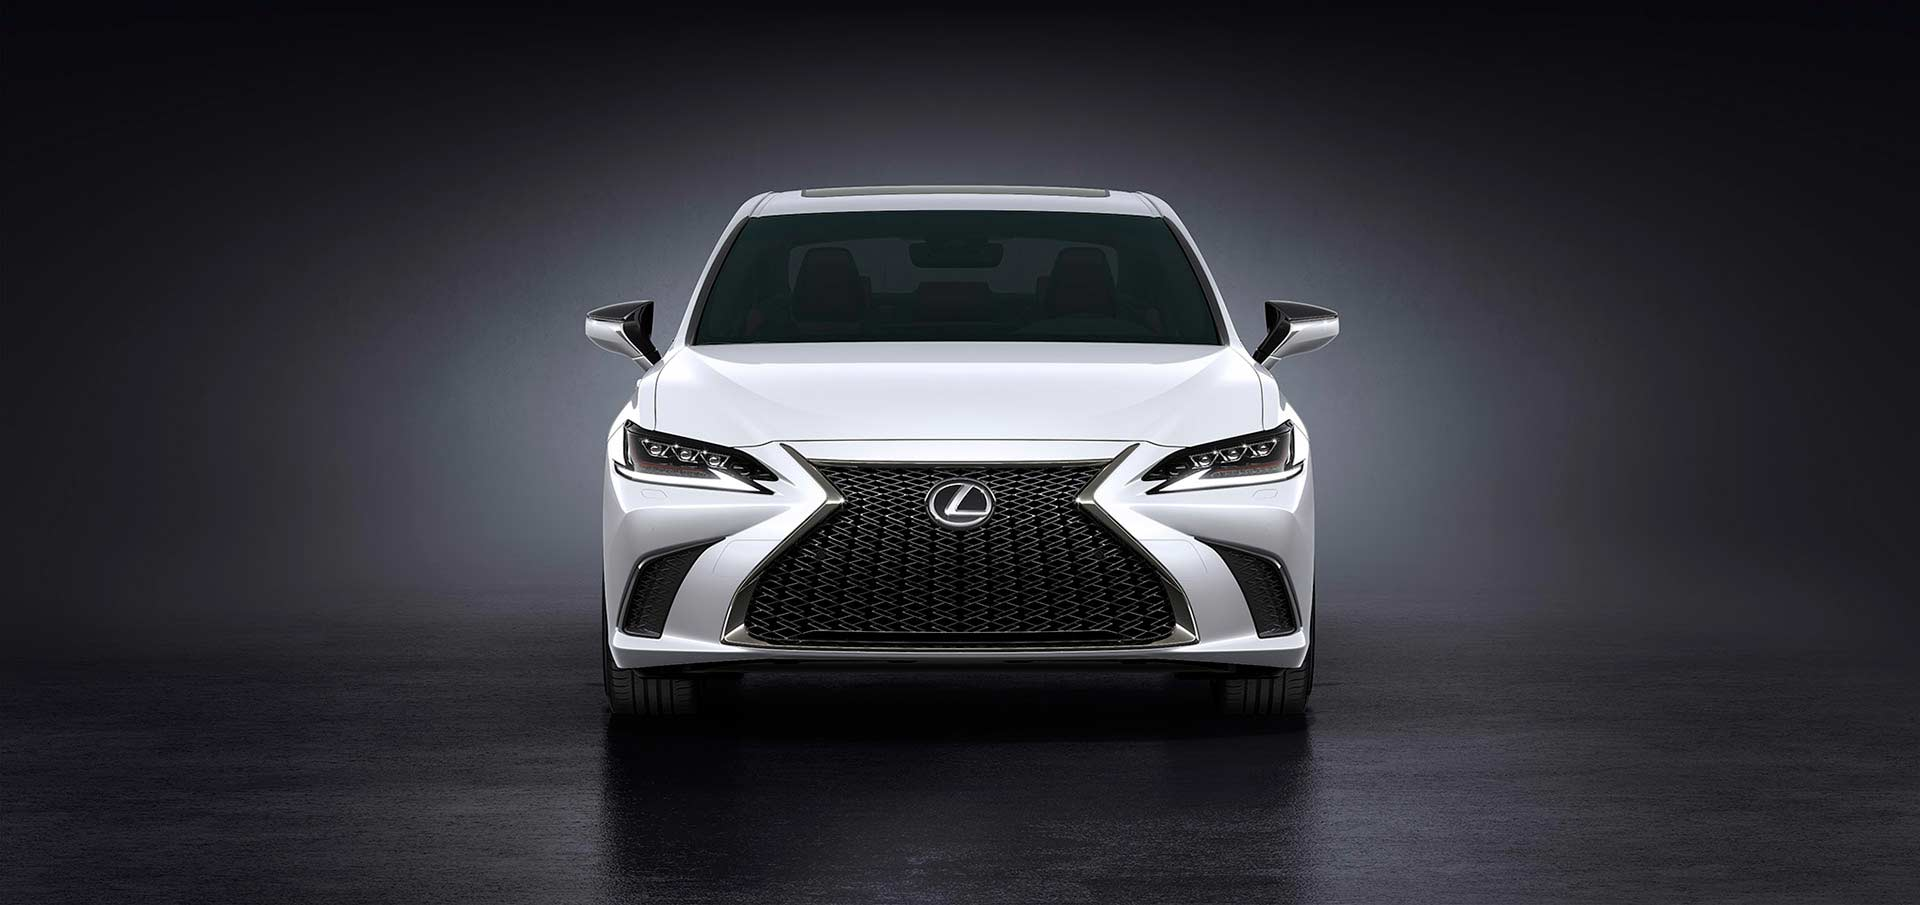 2019-7th-generation-Lexus-ES-260-F-Sport